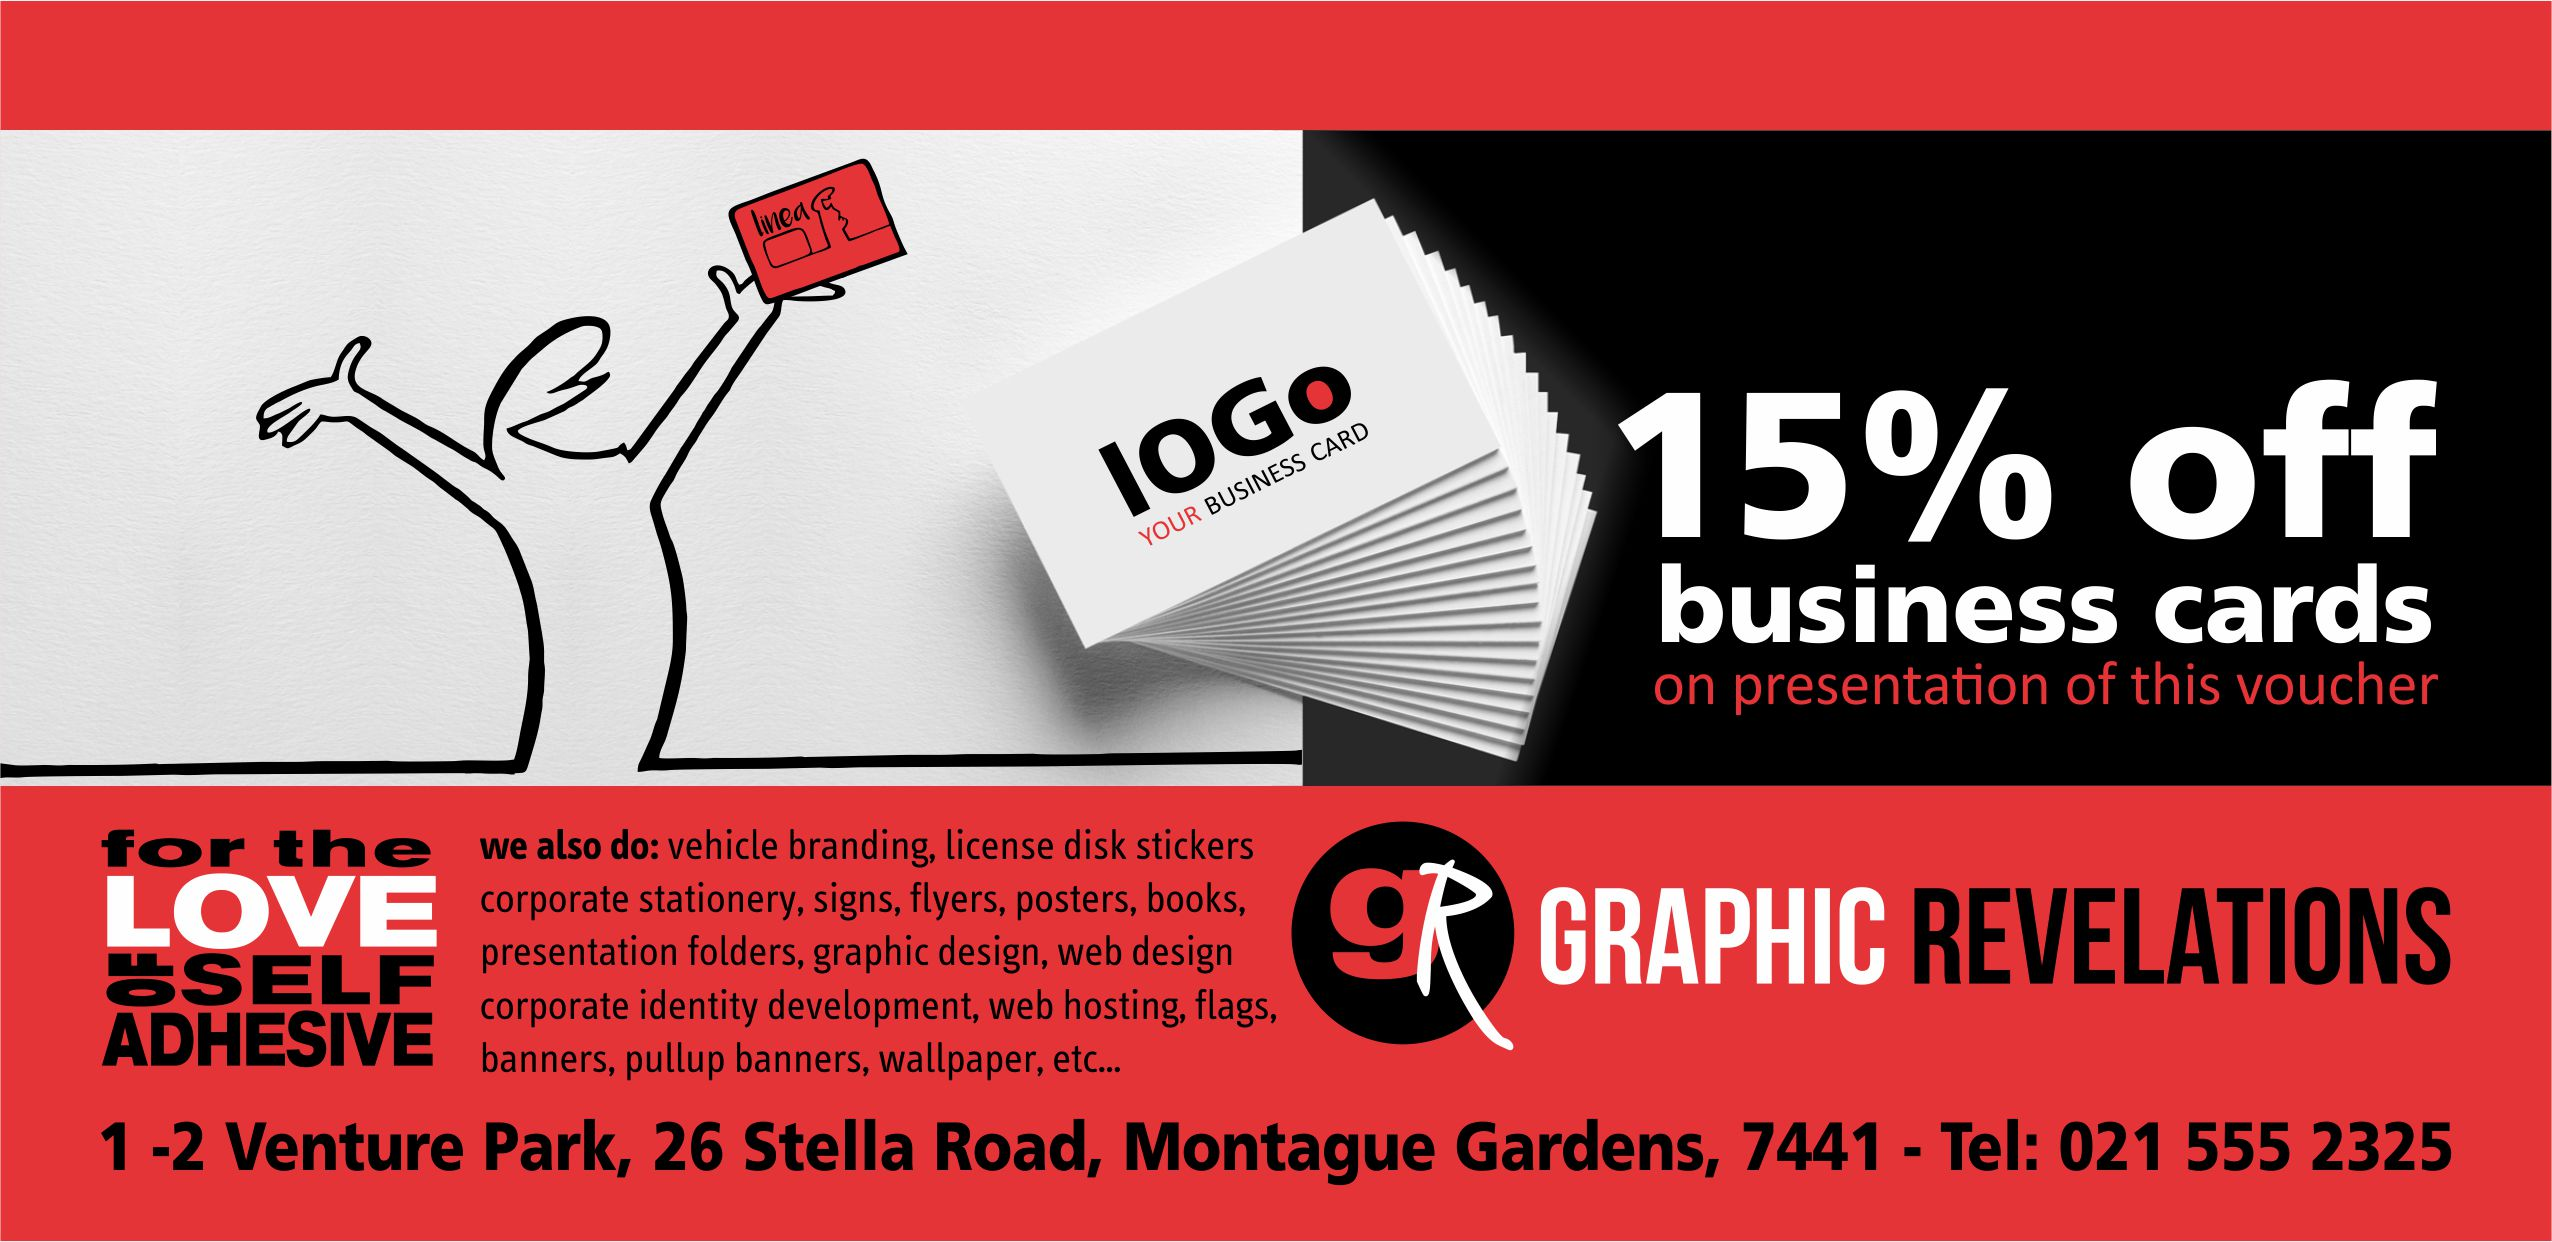 Business Cards Discount Voucher - Graphic Revelations